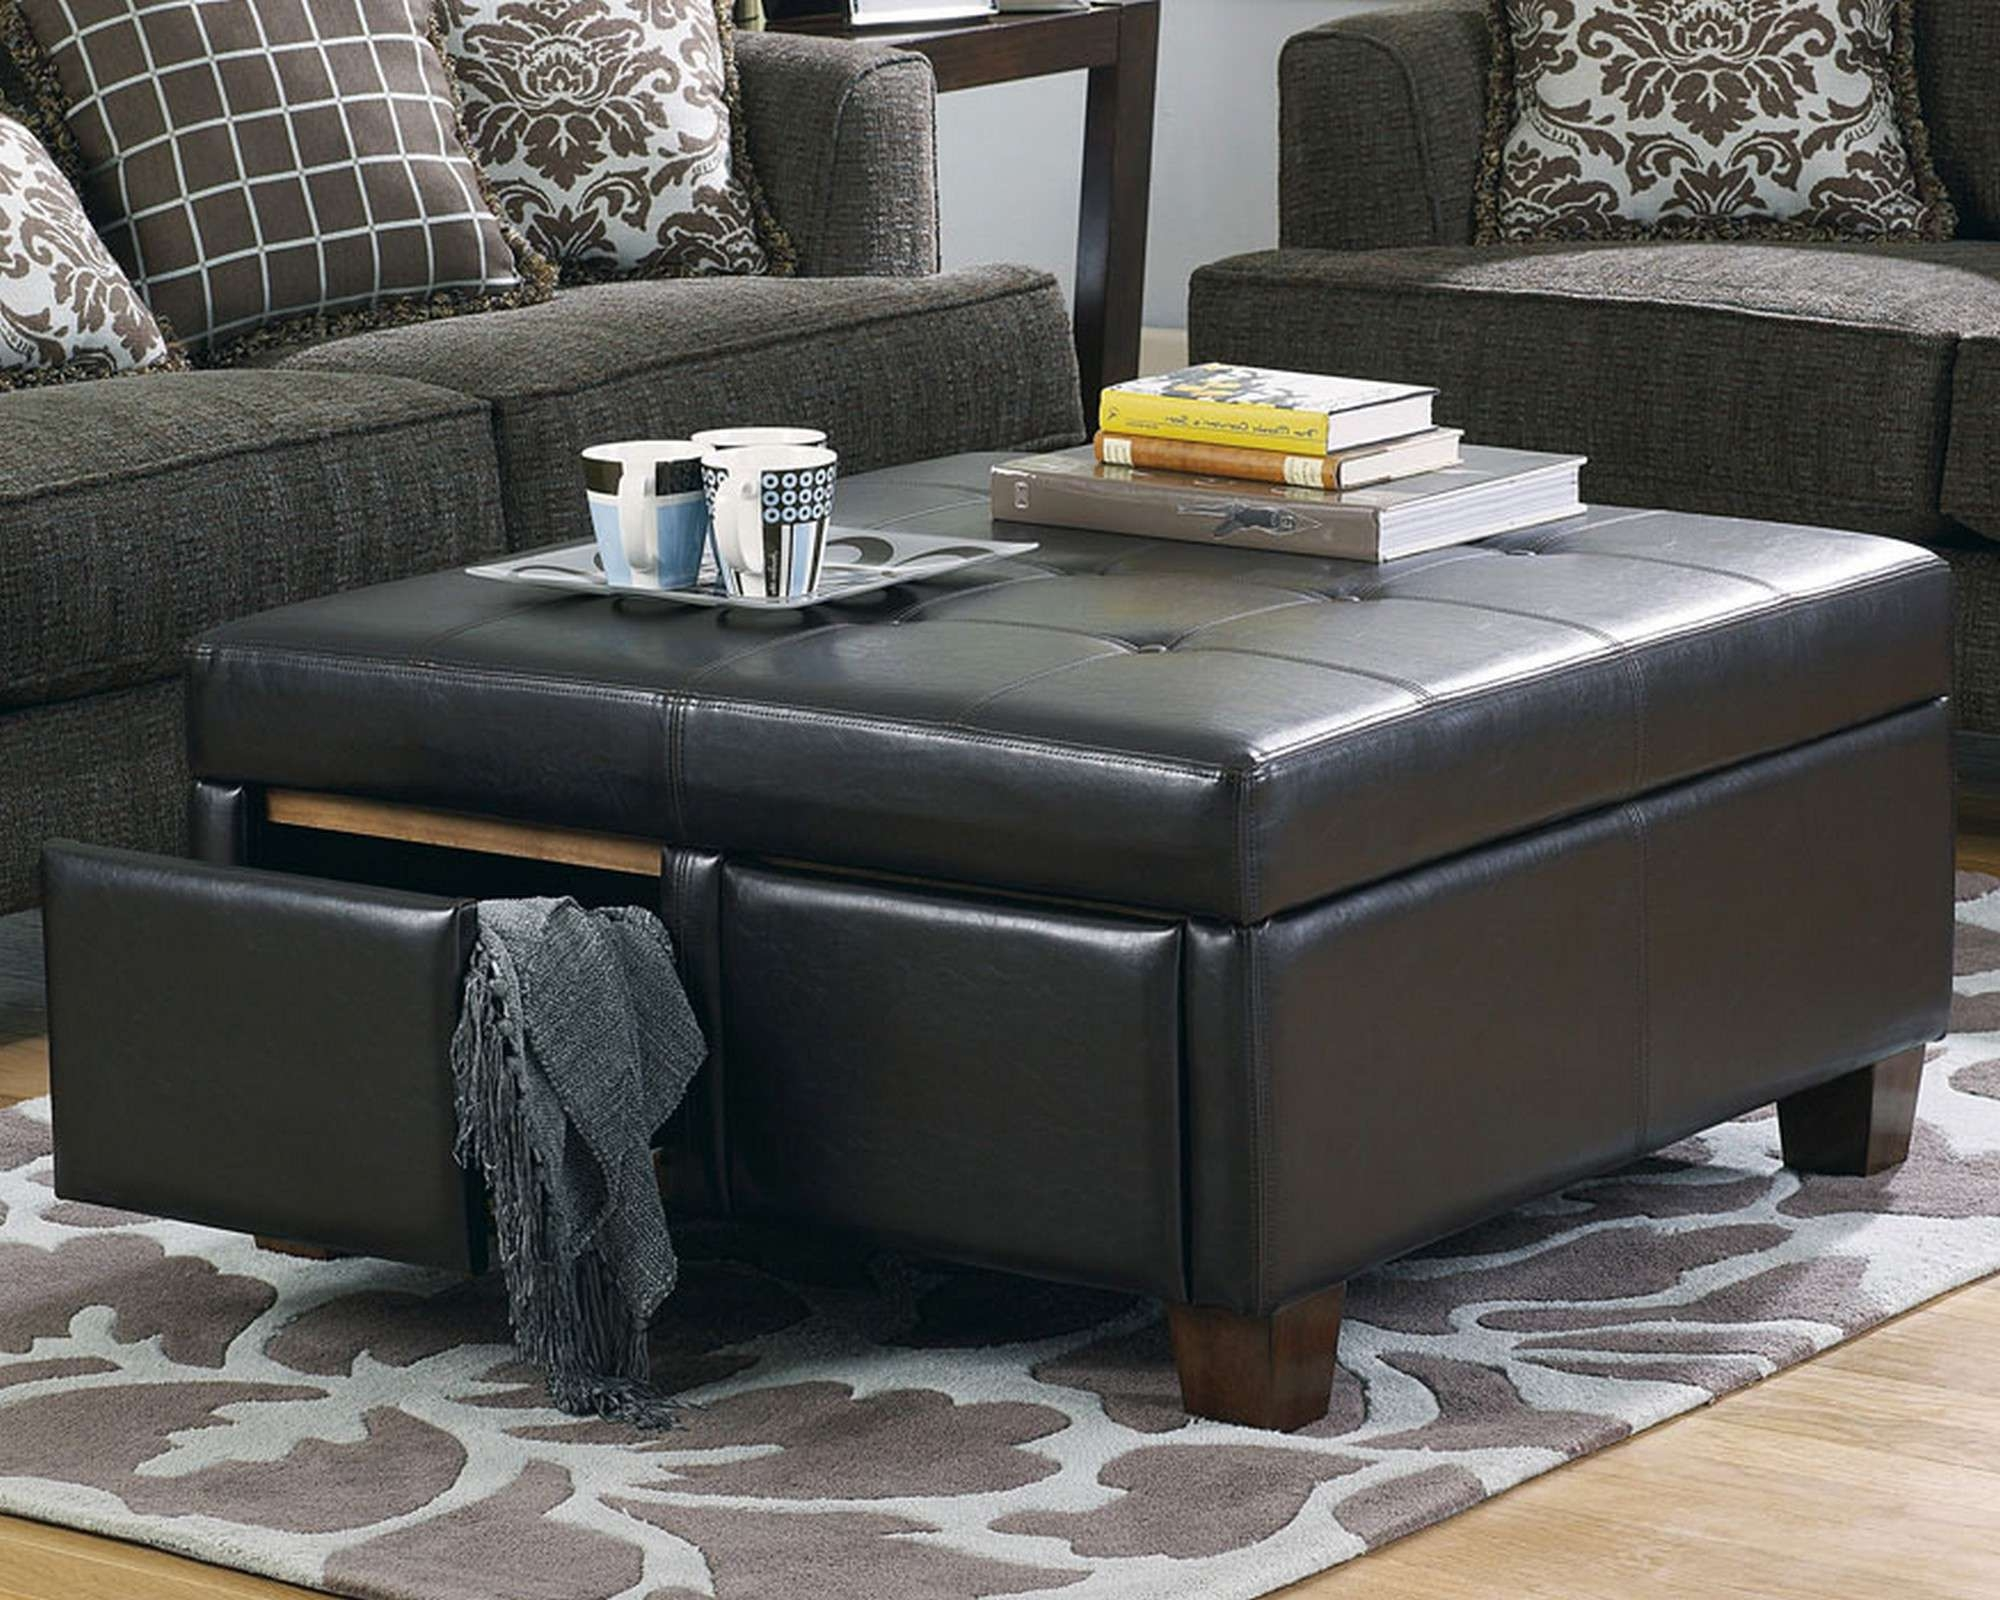 Latest Brown Leather Ottoman Coffee Tables With Storages Pertaining To Coffee Tables : Small Tufted Ottoman Round Storage Coffee Table (View 8 of 20)